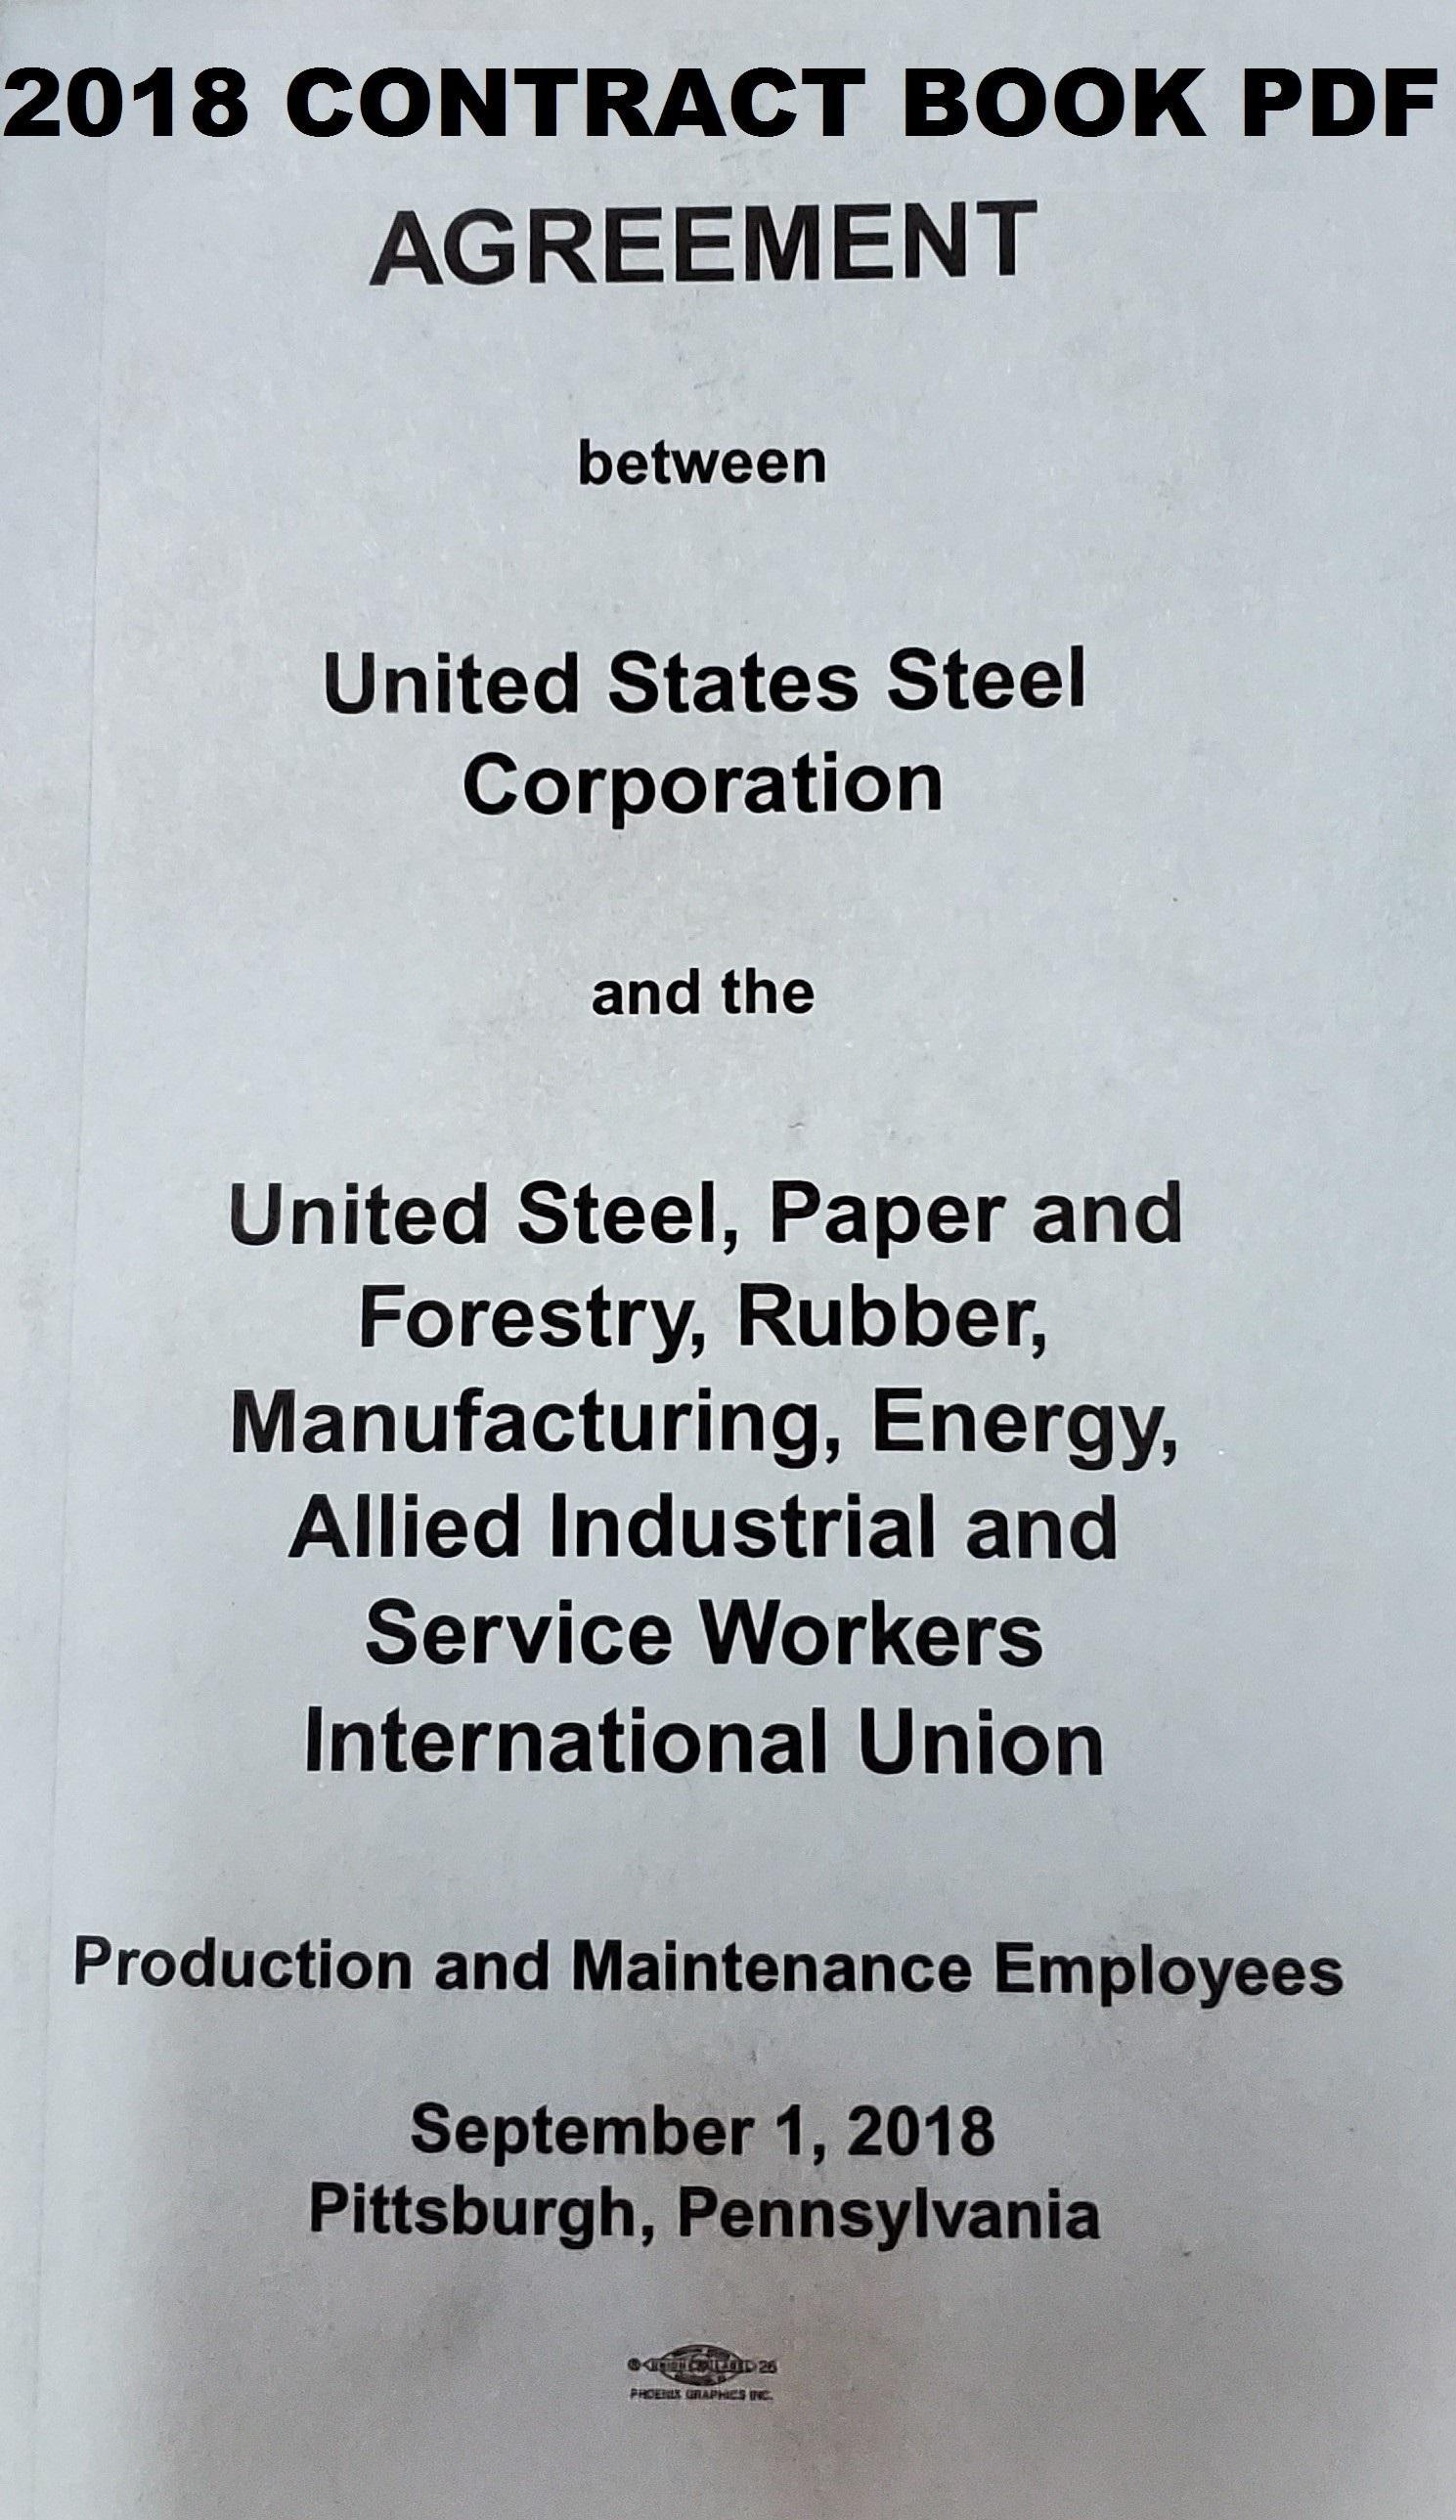 USW / US STEEL CONTRACT BOOK